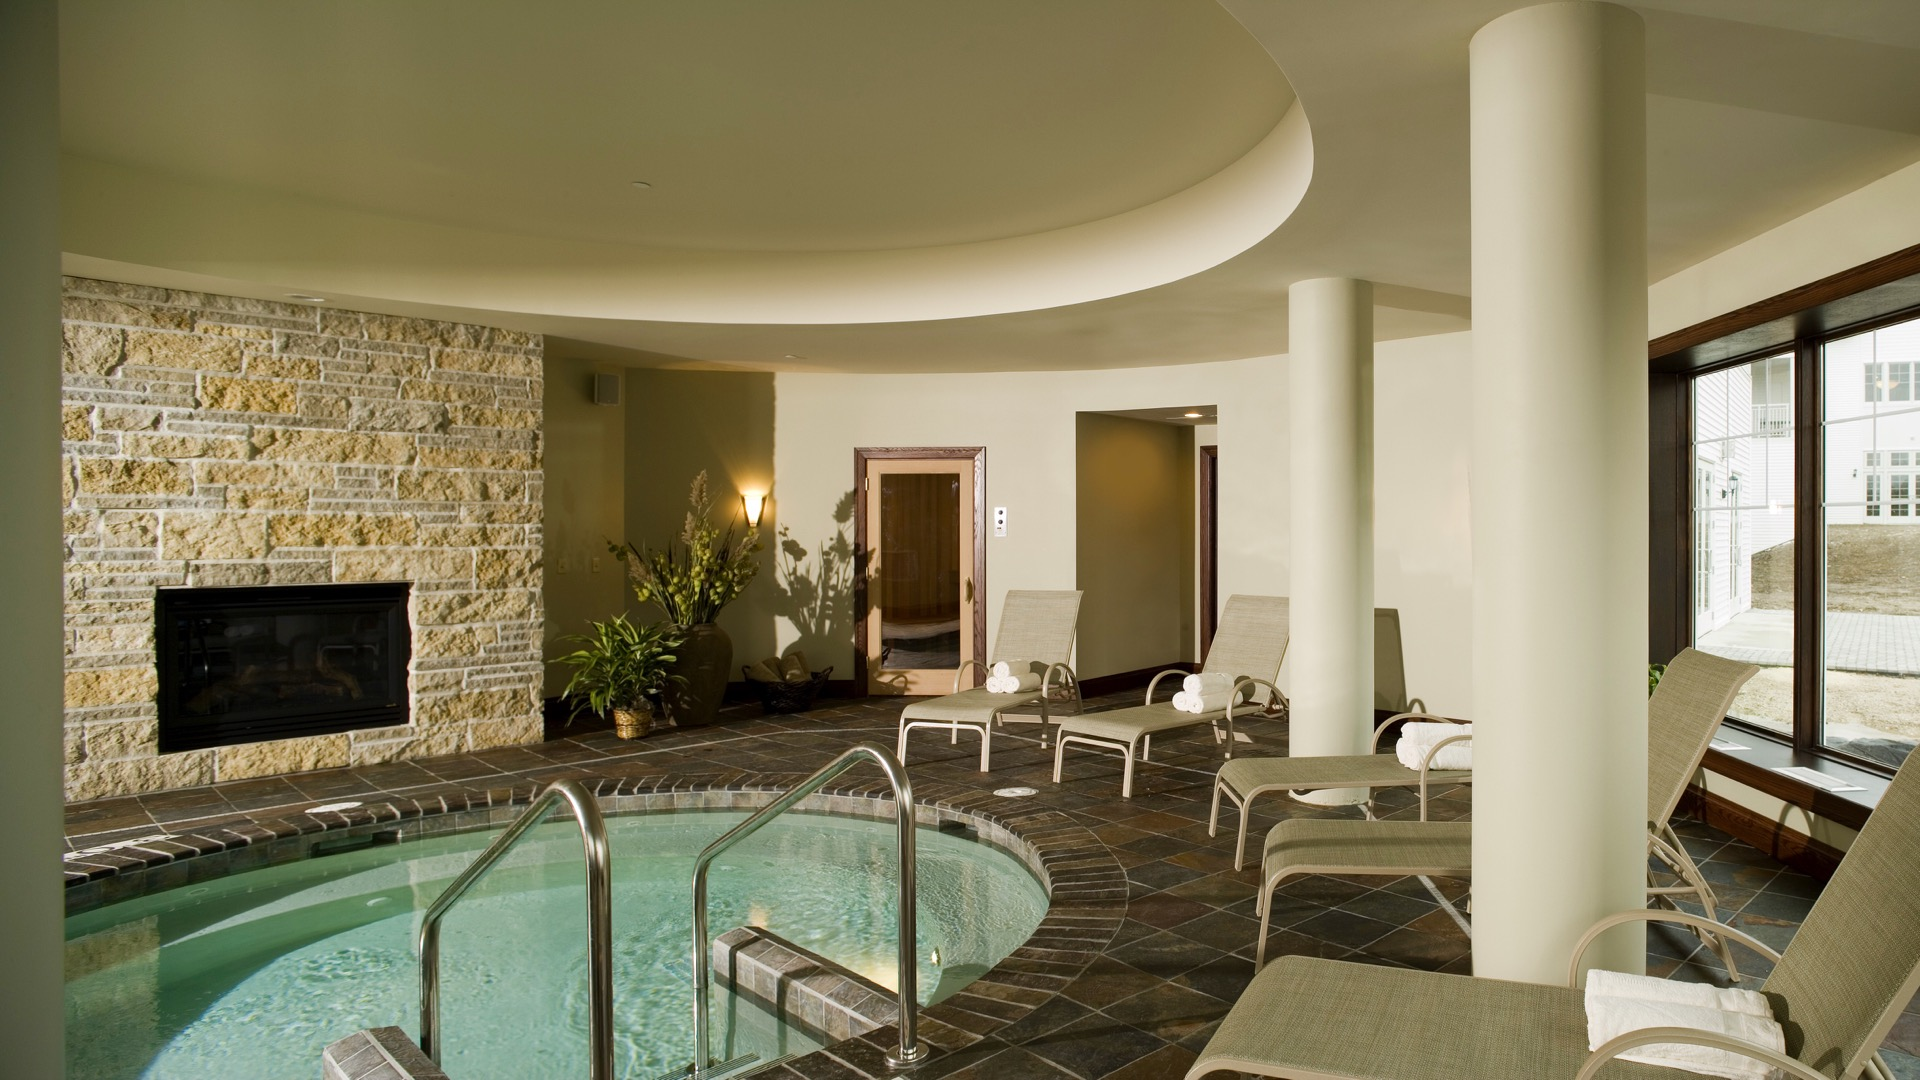 Whirlpool, Aspira Spa at The Osthoff Resort, Spas of America